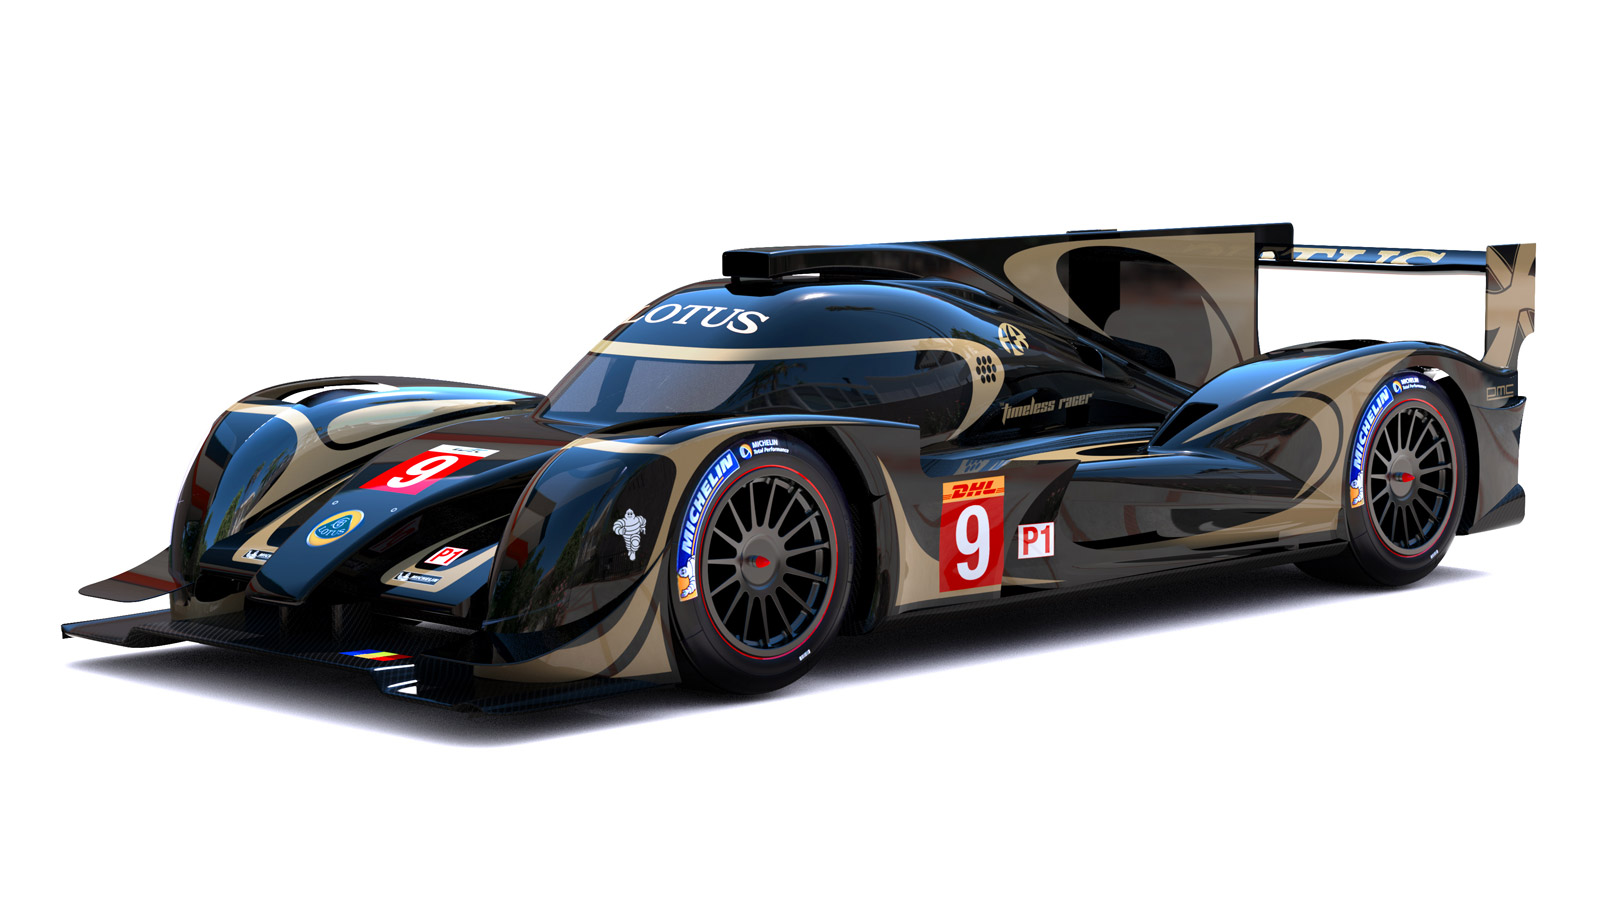 Lotus LMP1 To Be Unveiled At Le Mans But Won't Race